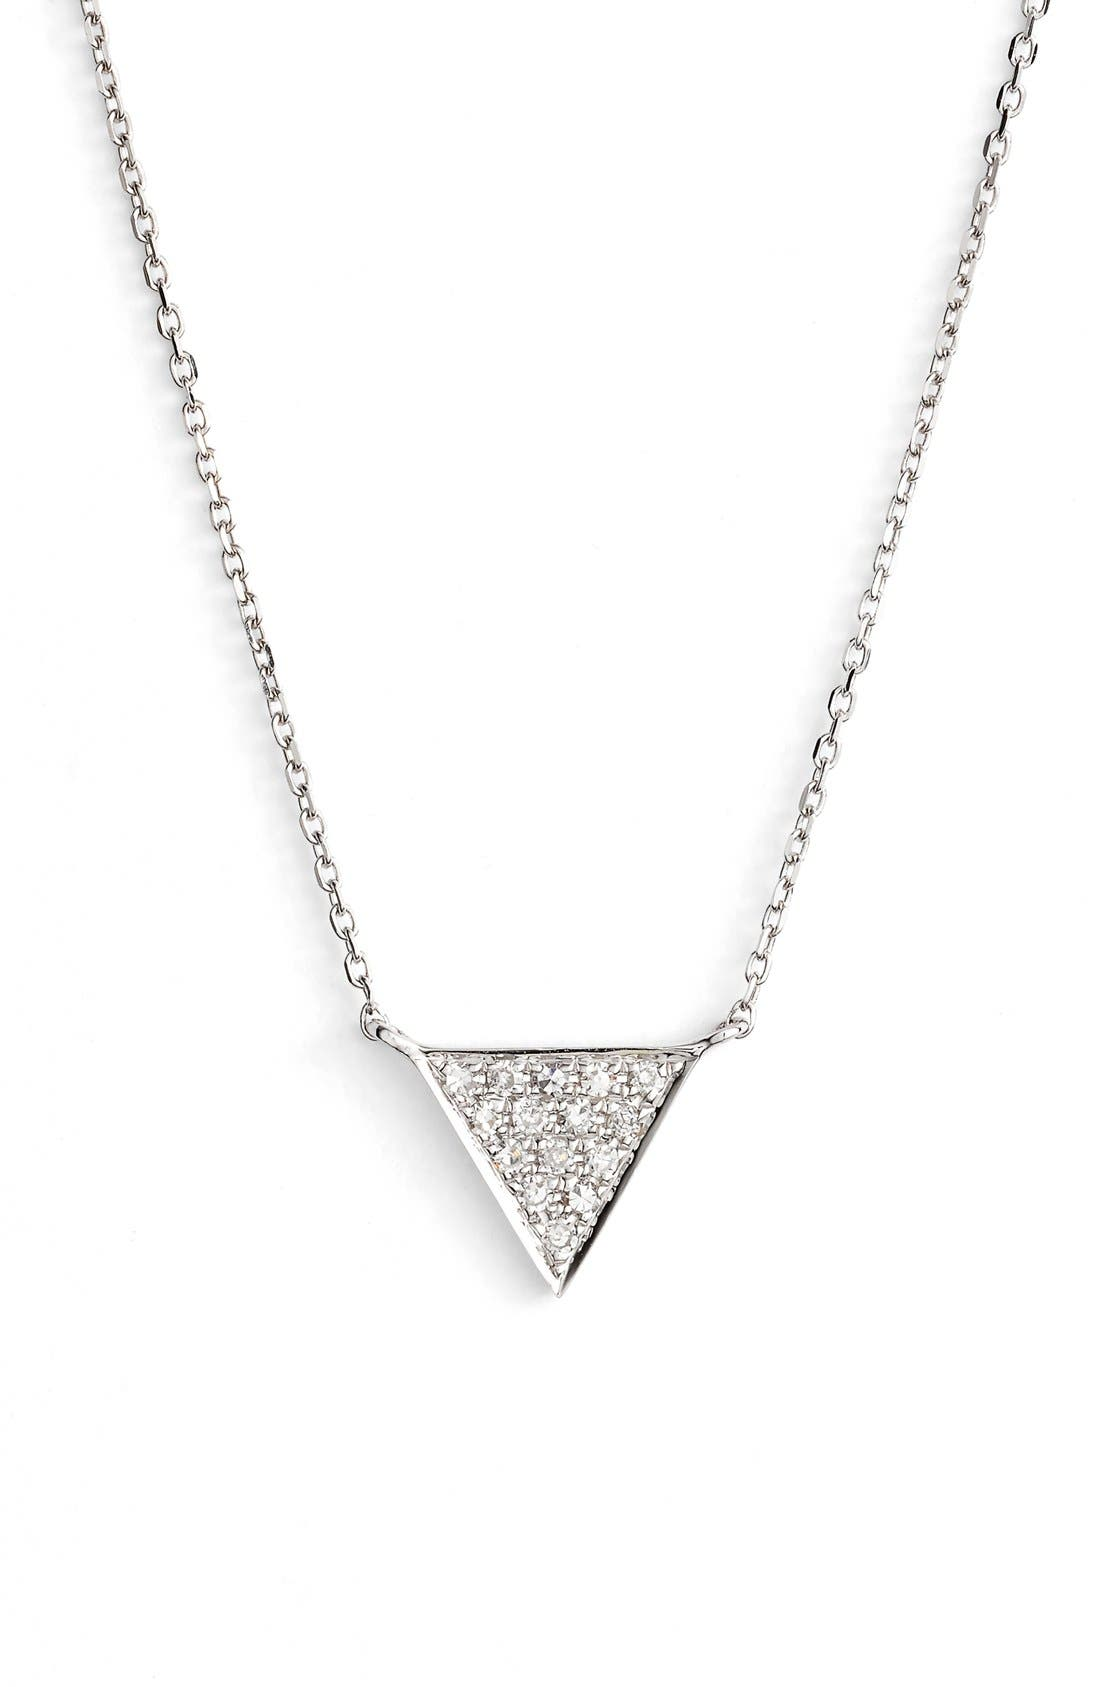 DANA REBECCA DESIGNS Emily Sarah Diamond Triangle Pendant Necklace